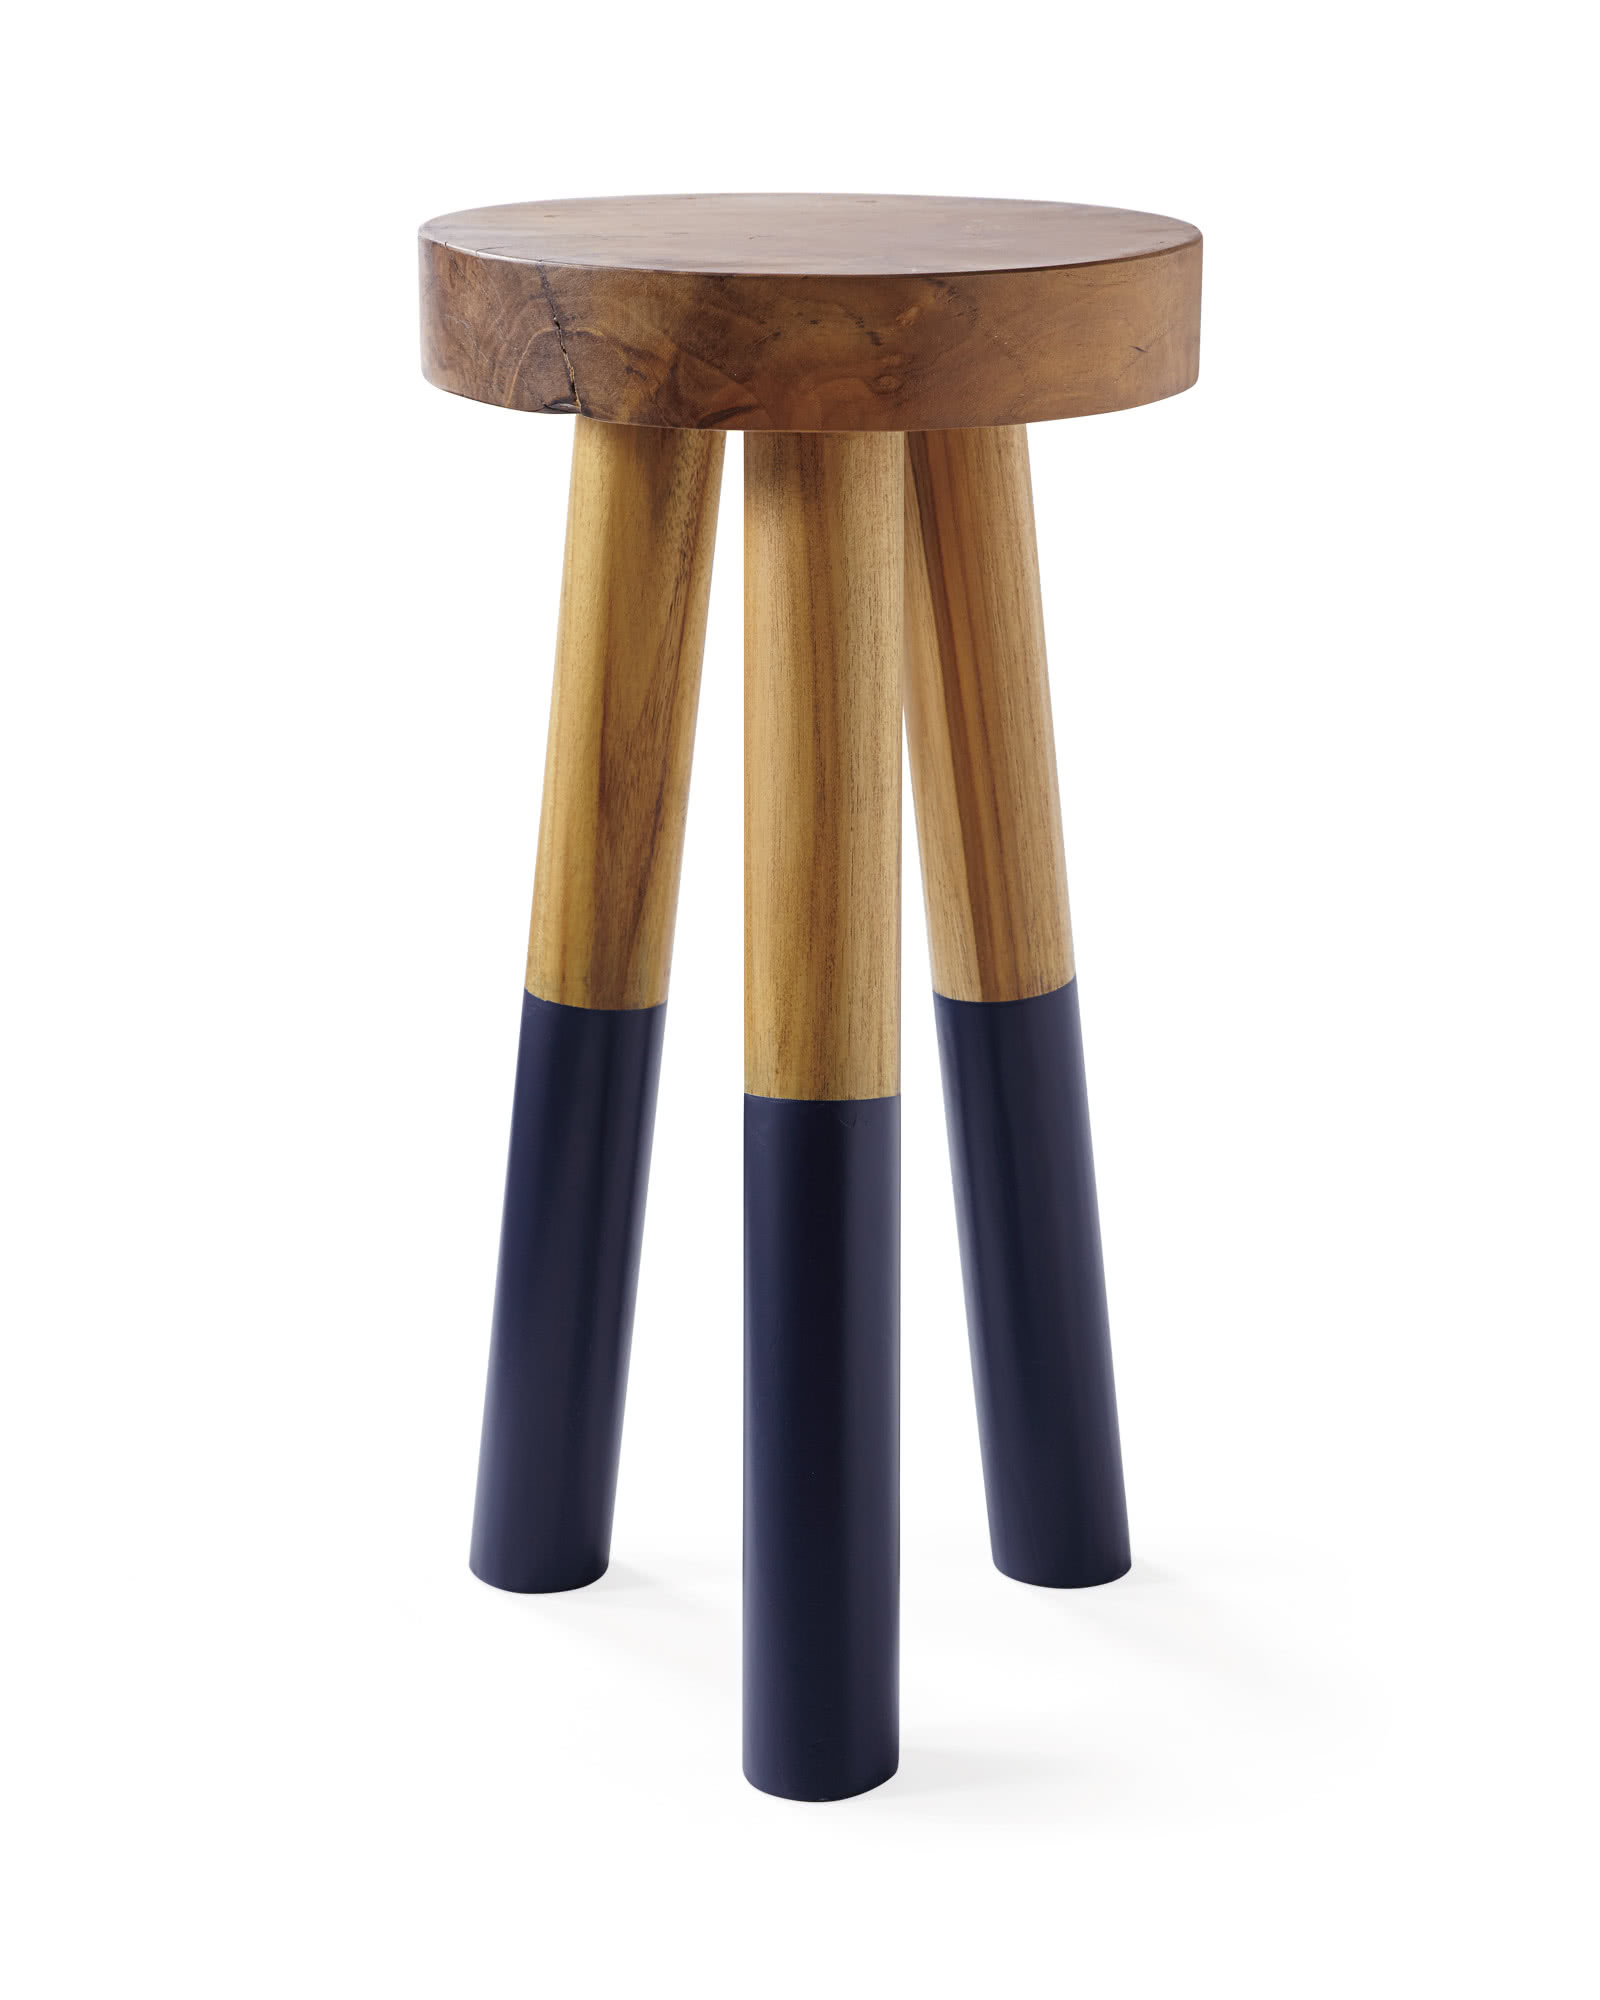 Dip-Dyed Stools, Navy